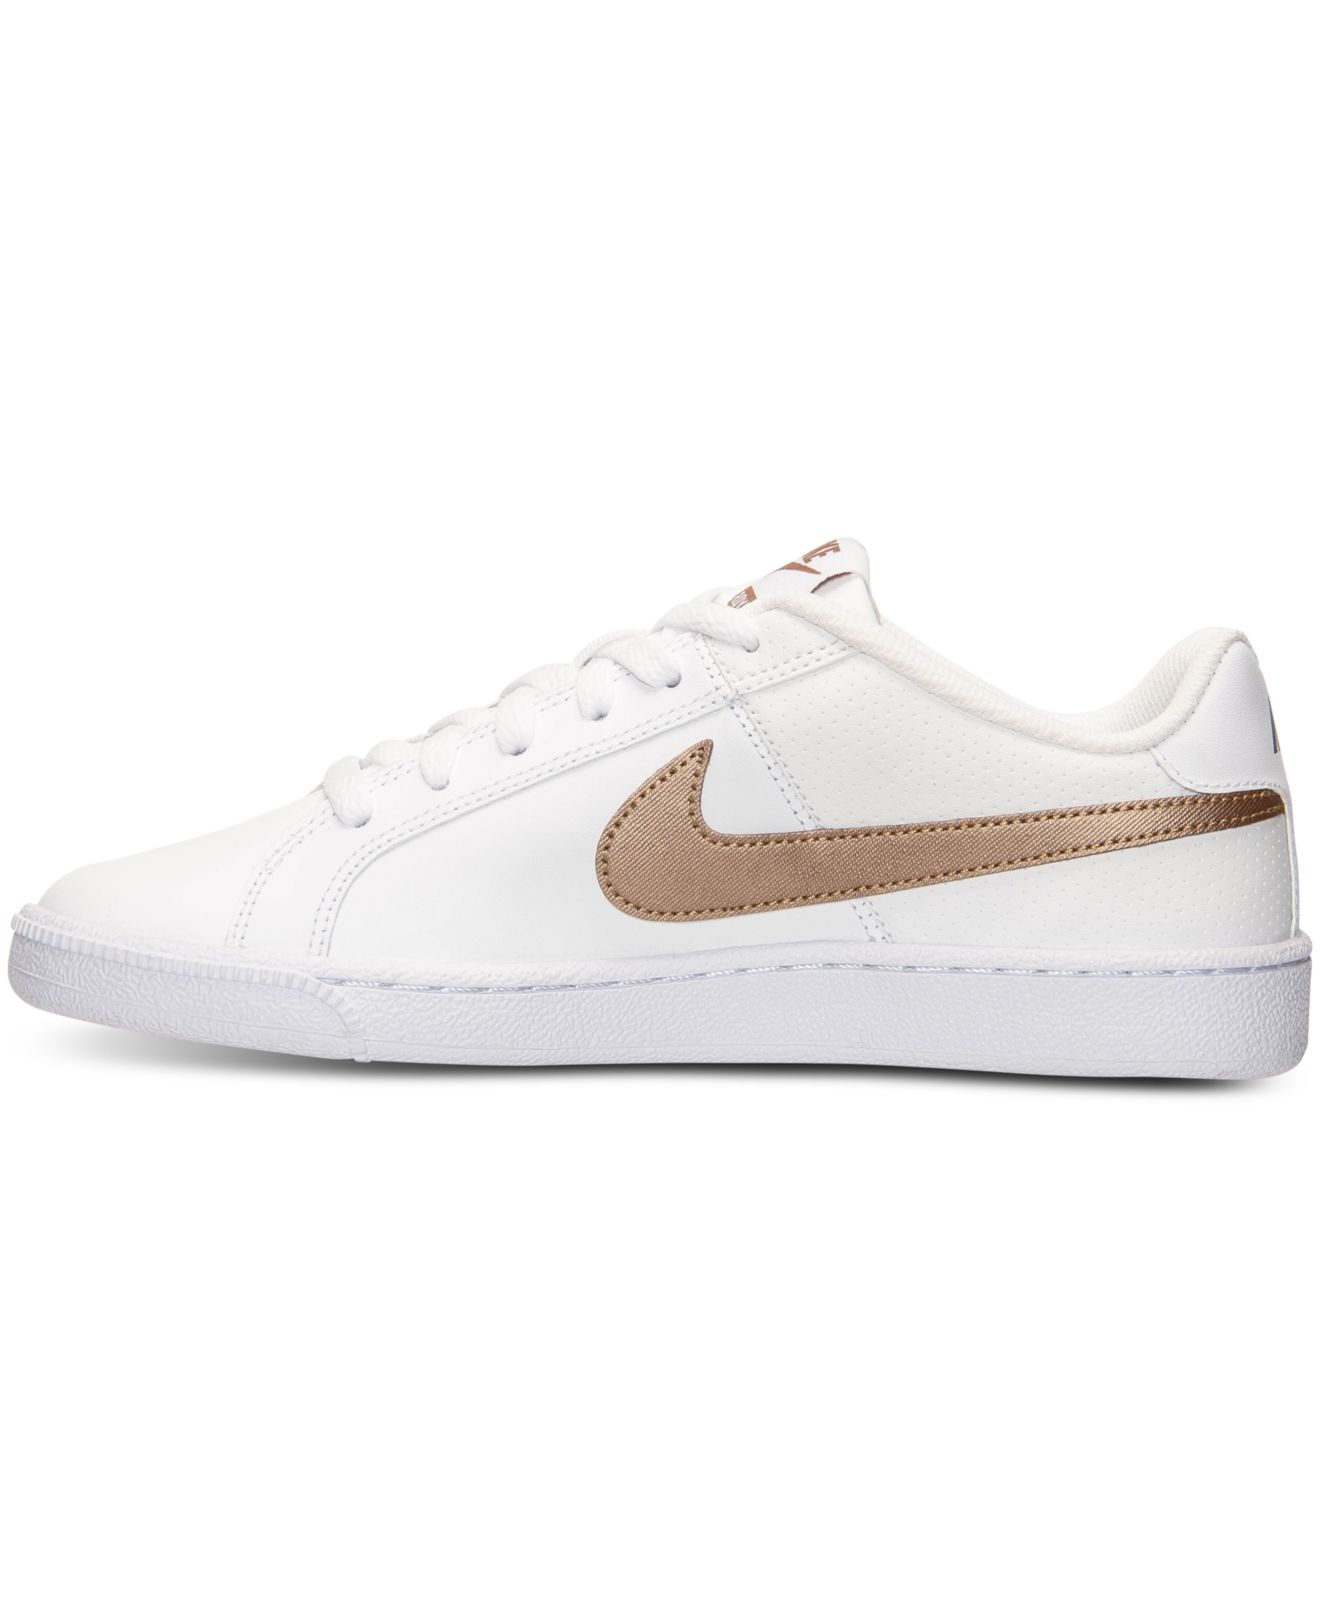 Lyst - Nike Women s Court Royale Casual Sneakers From Finish Line in ... c19c67616